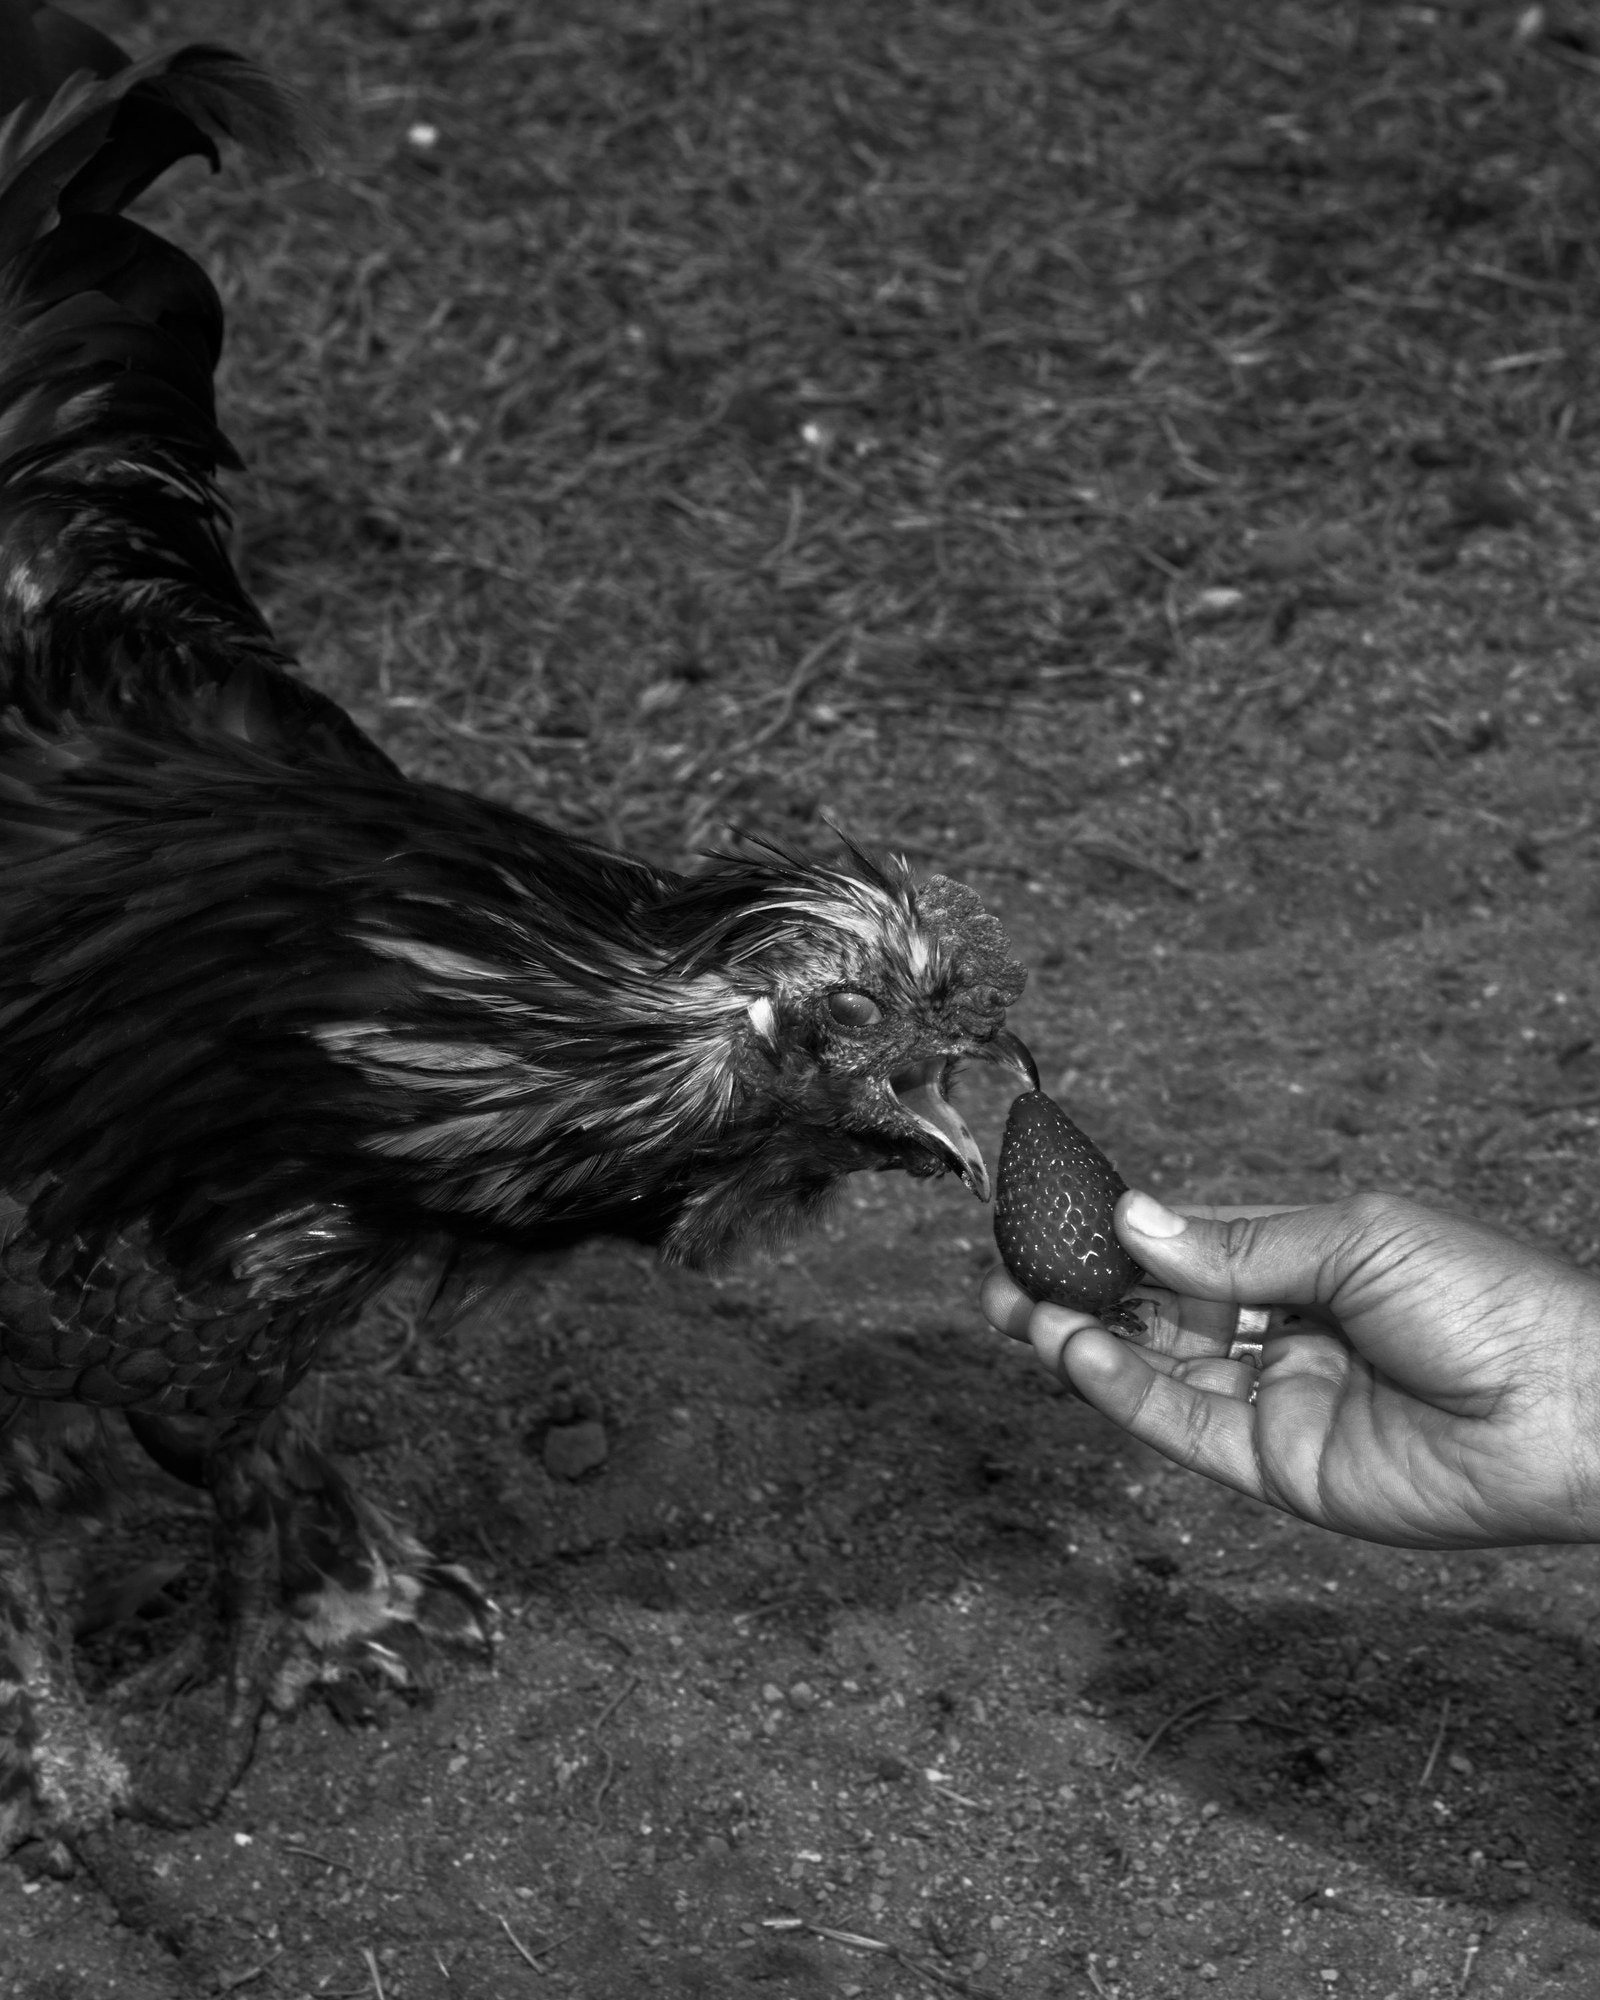 a person's hand holding a strawberry to a chicken